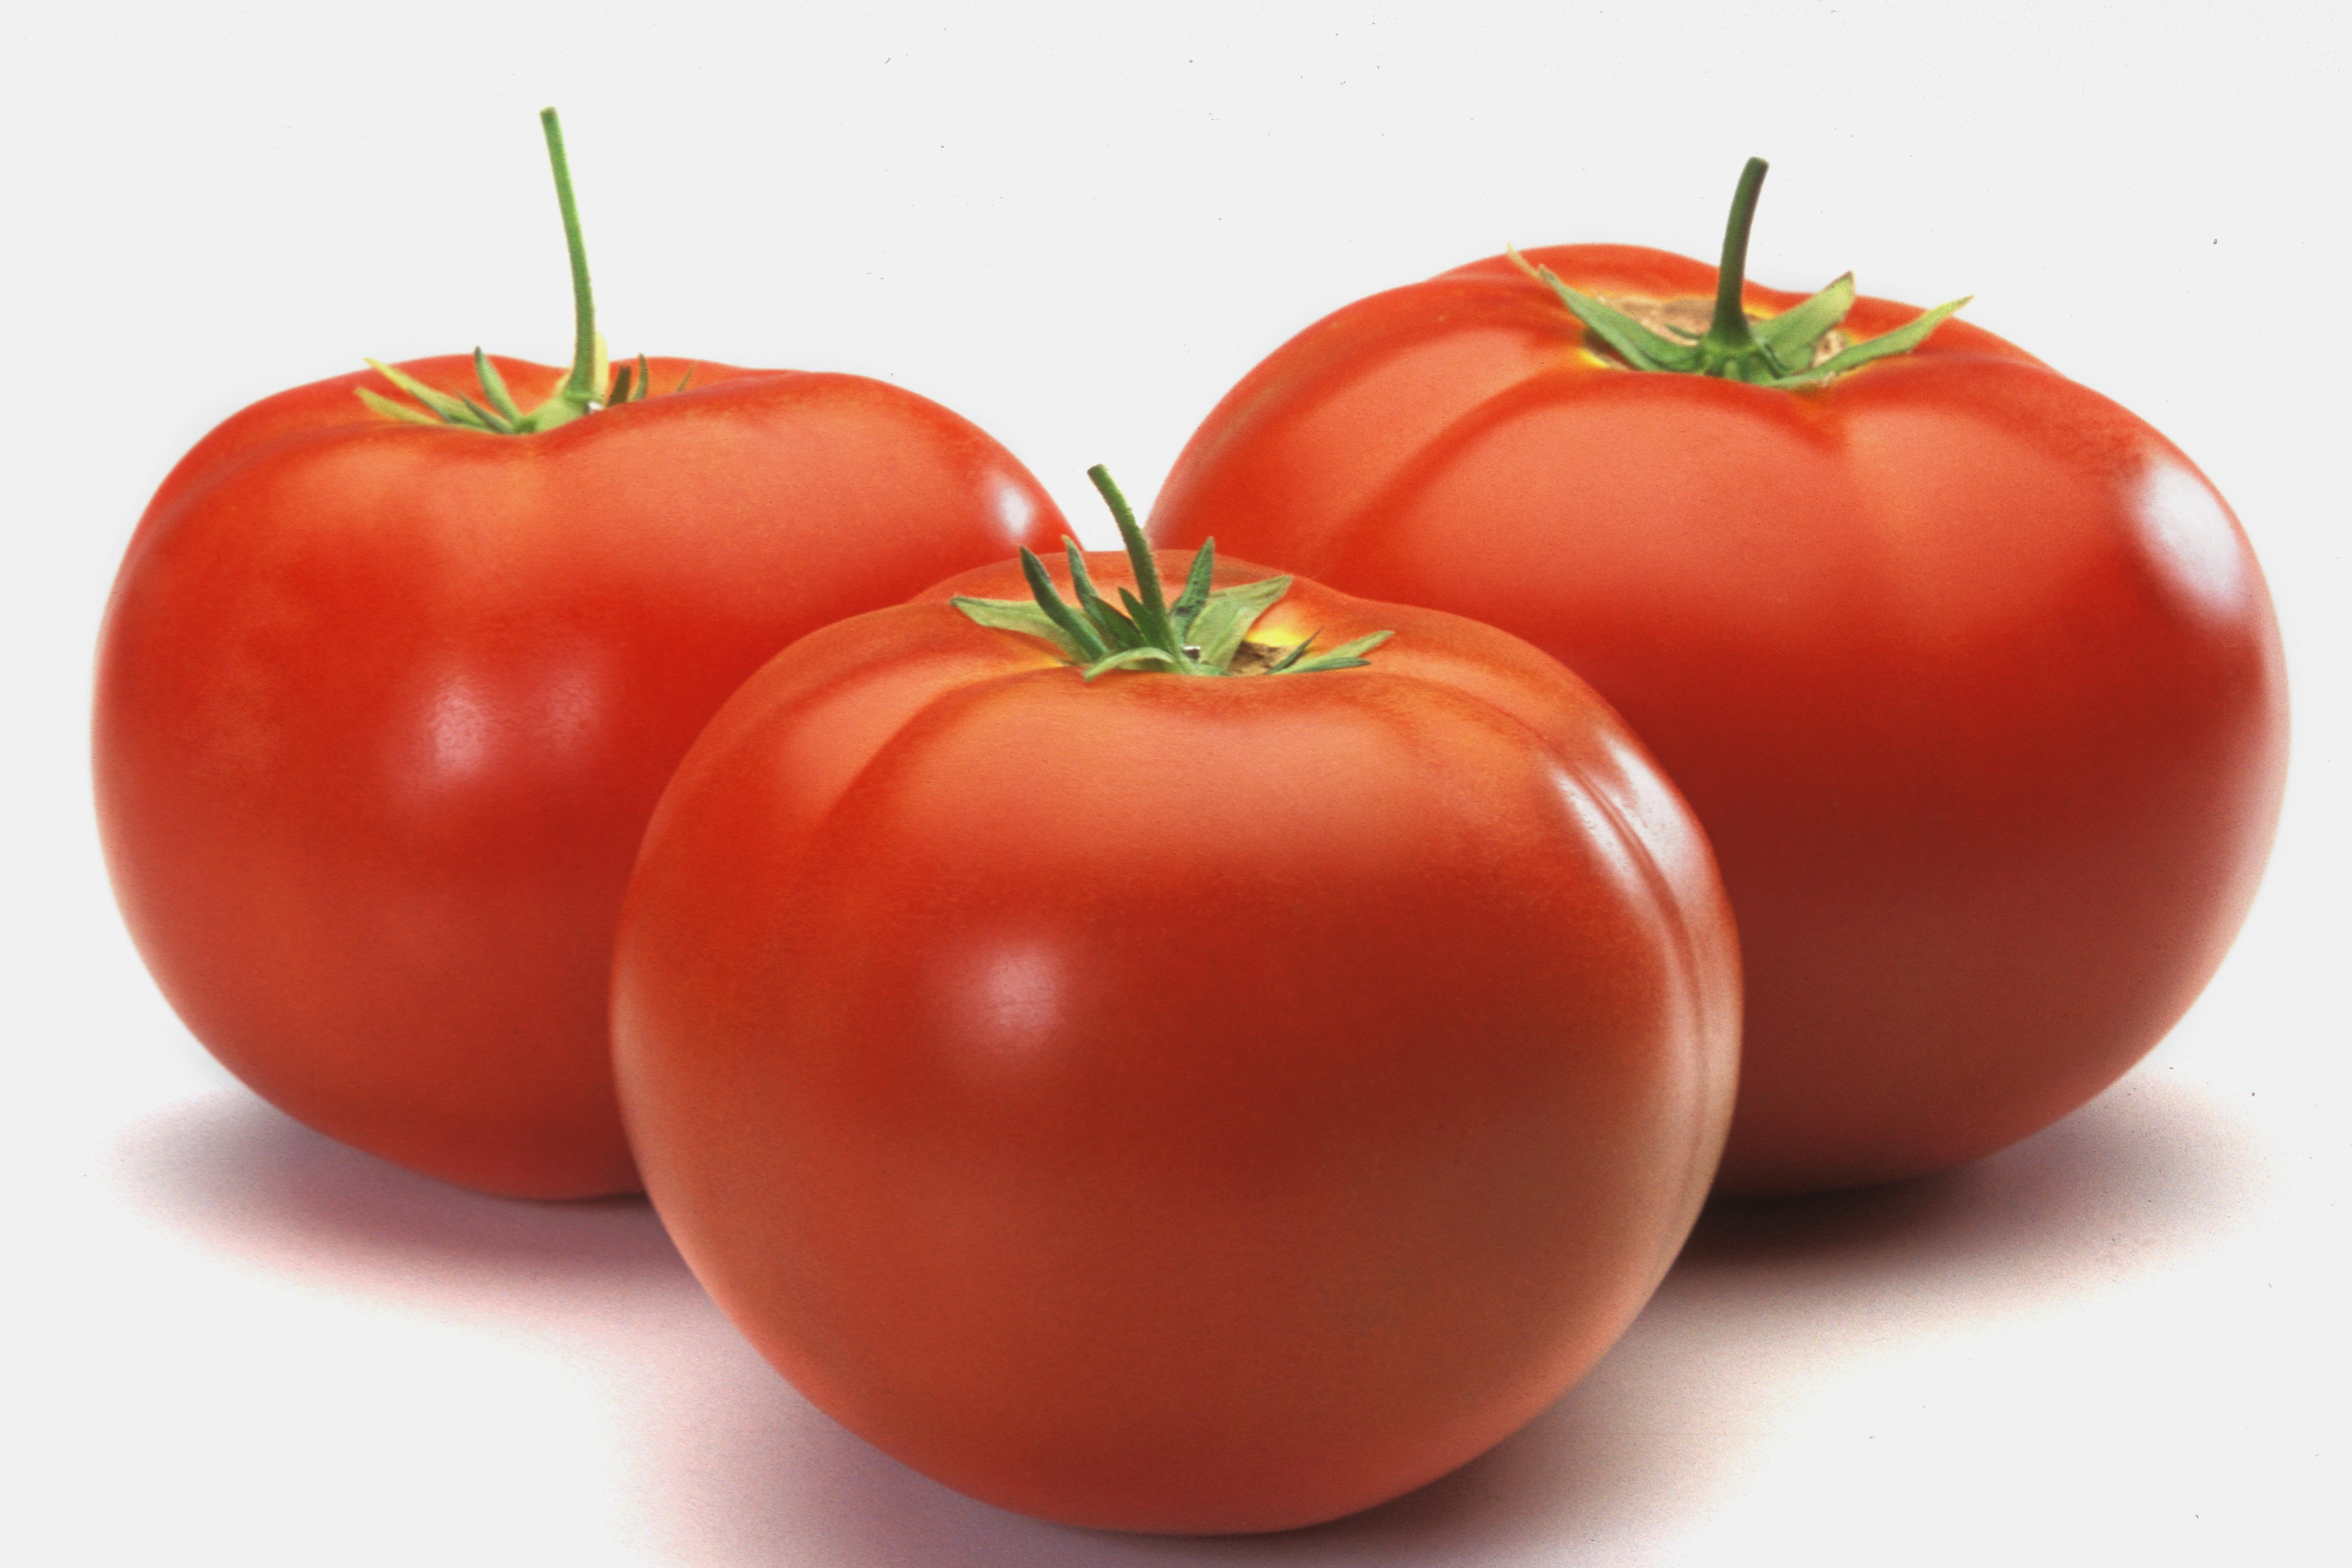 Three tomatoes on counter, close-up